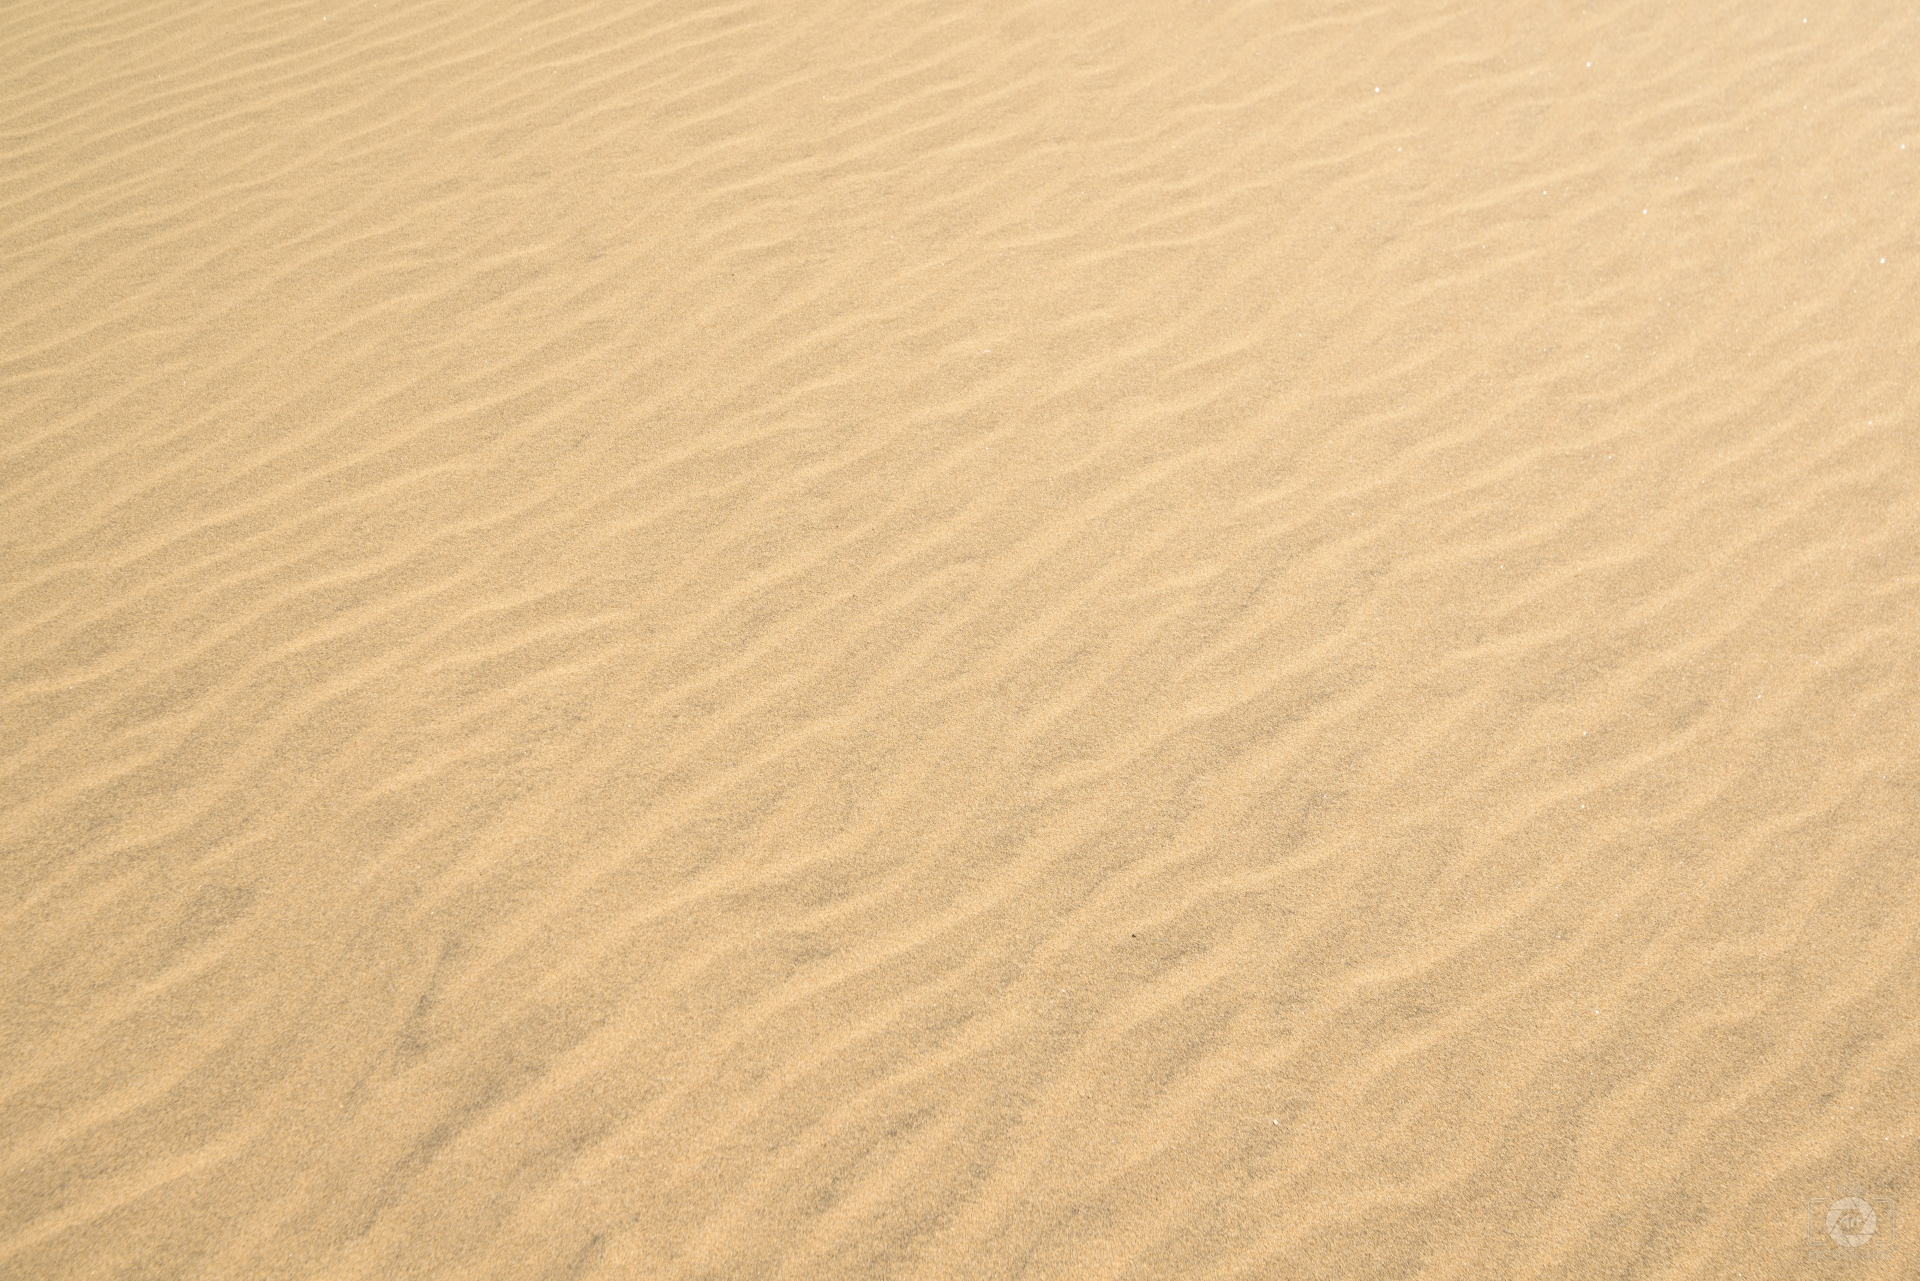 Sand Texture - High-quality Free Backgrounds